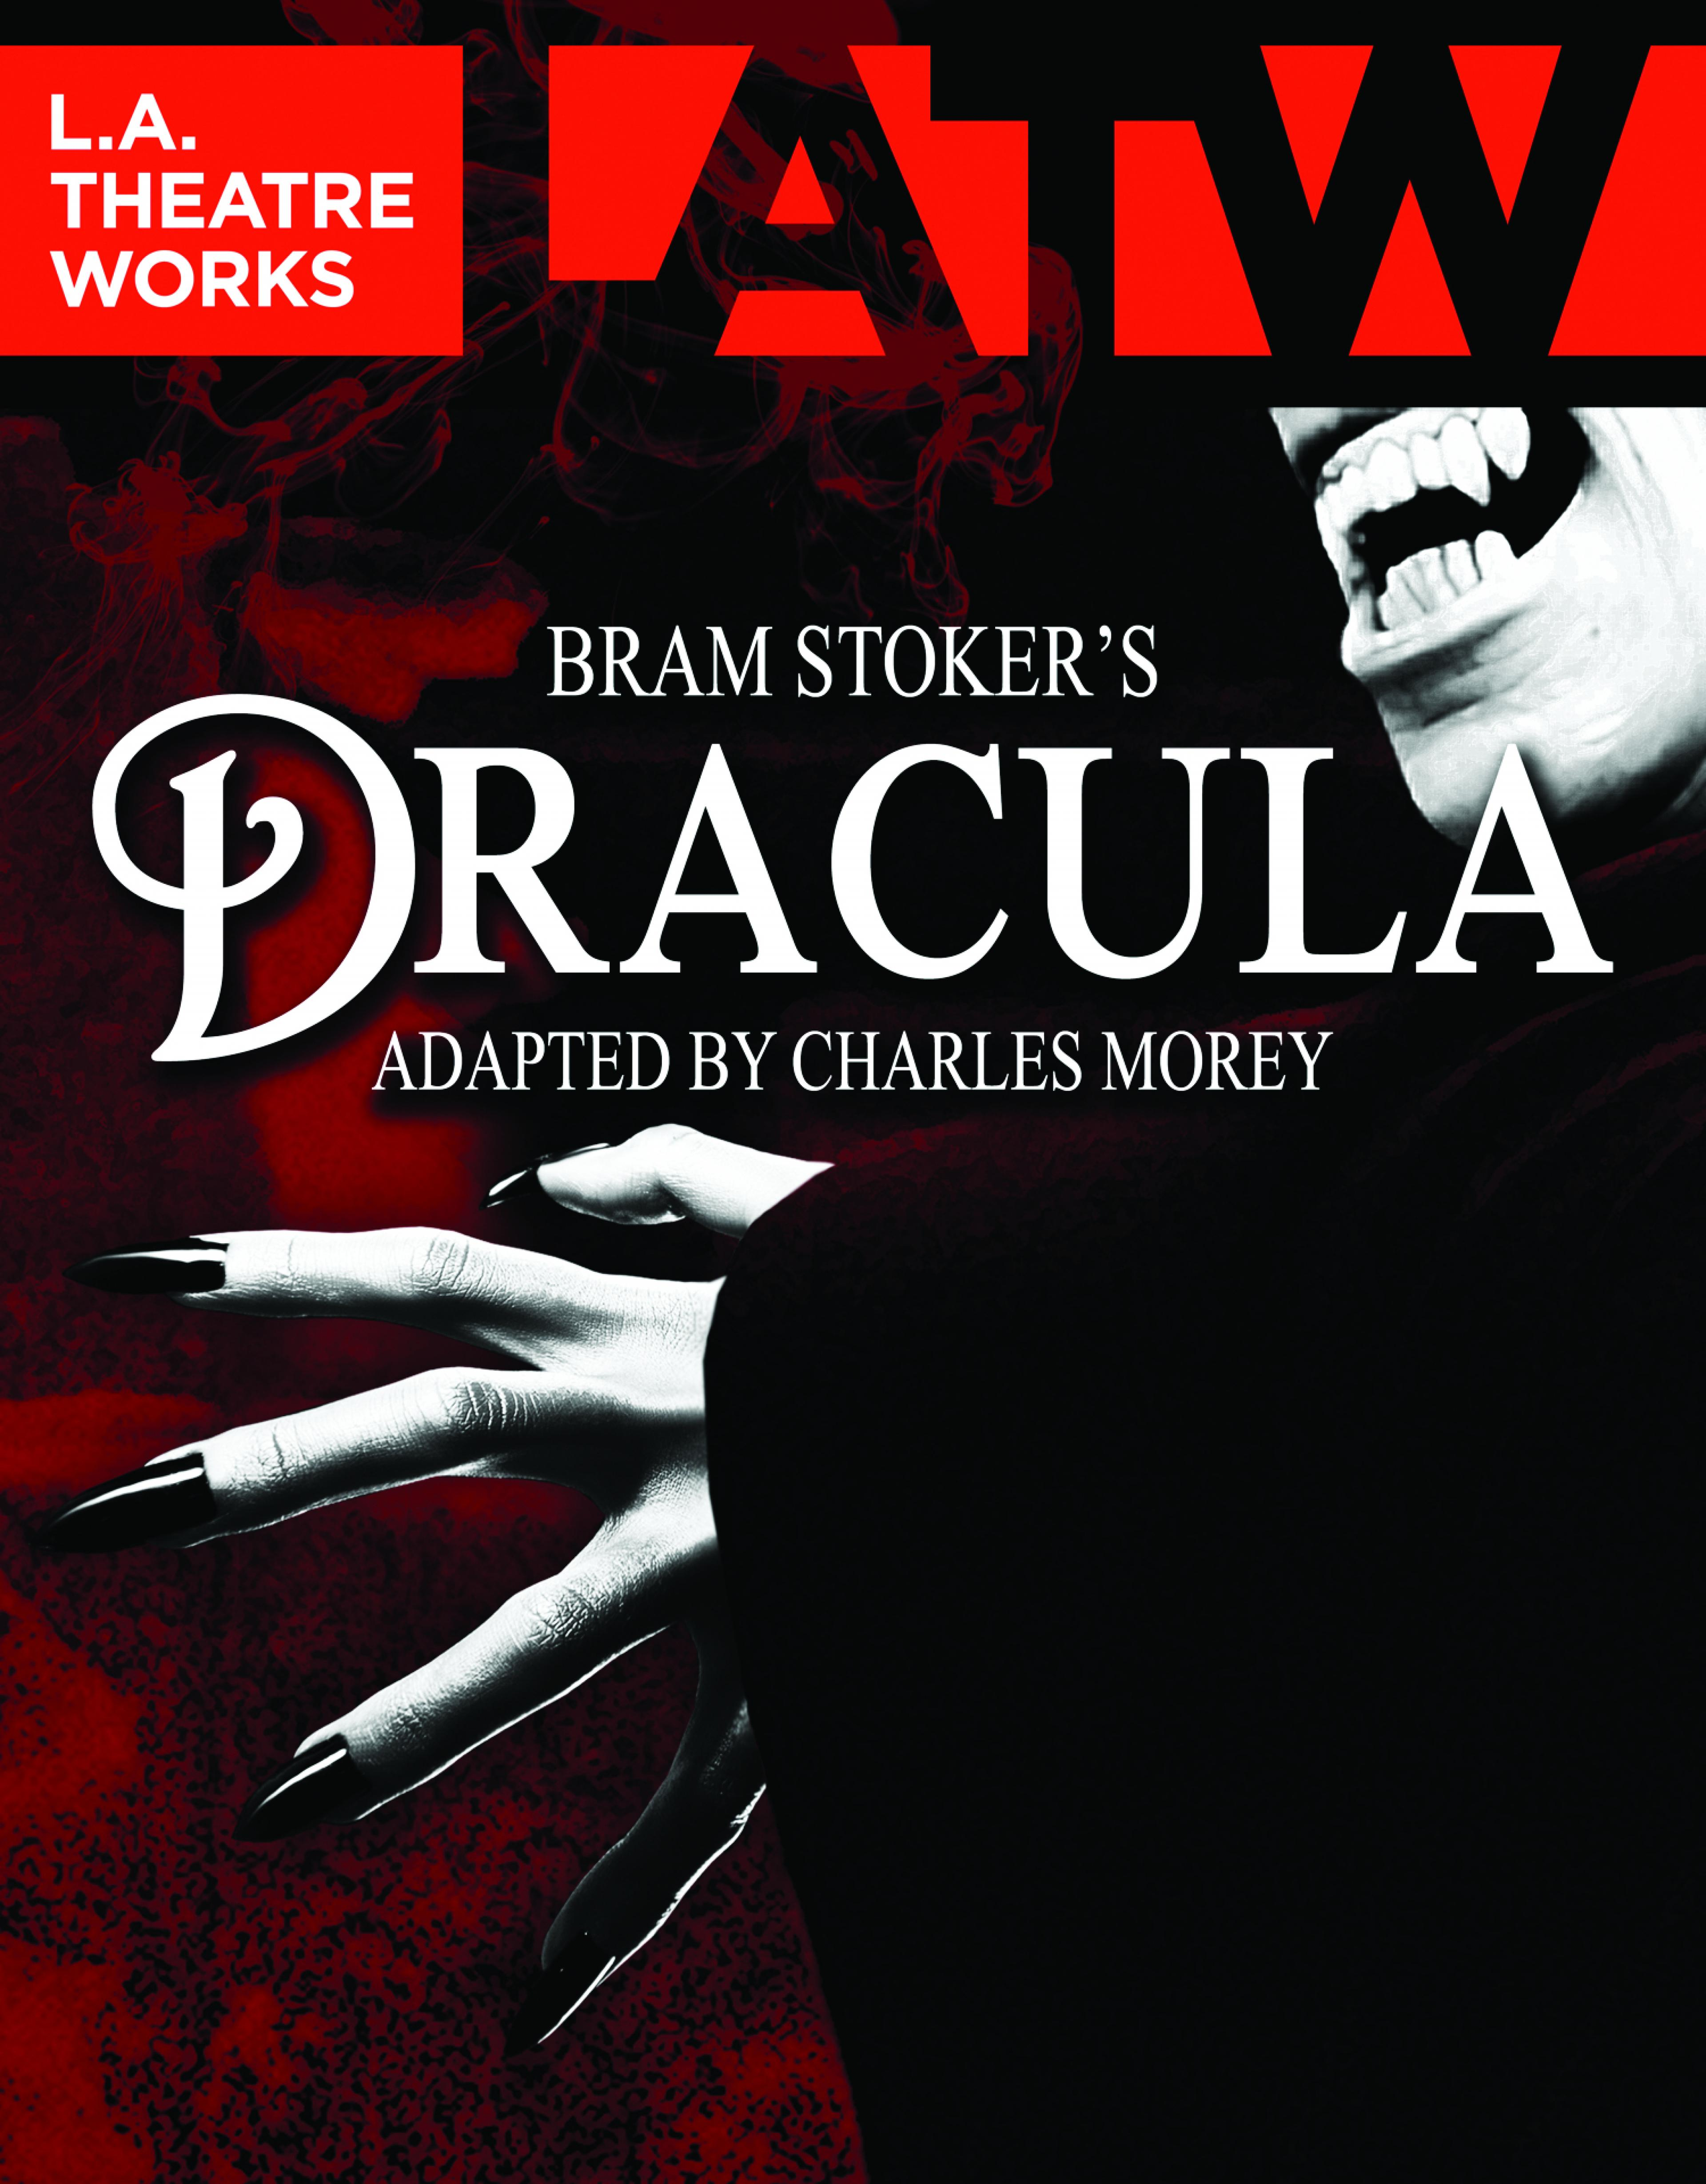 publicity image for L.A. Theatre Works presents Bram Stoker's Dracula